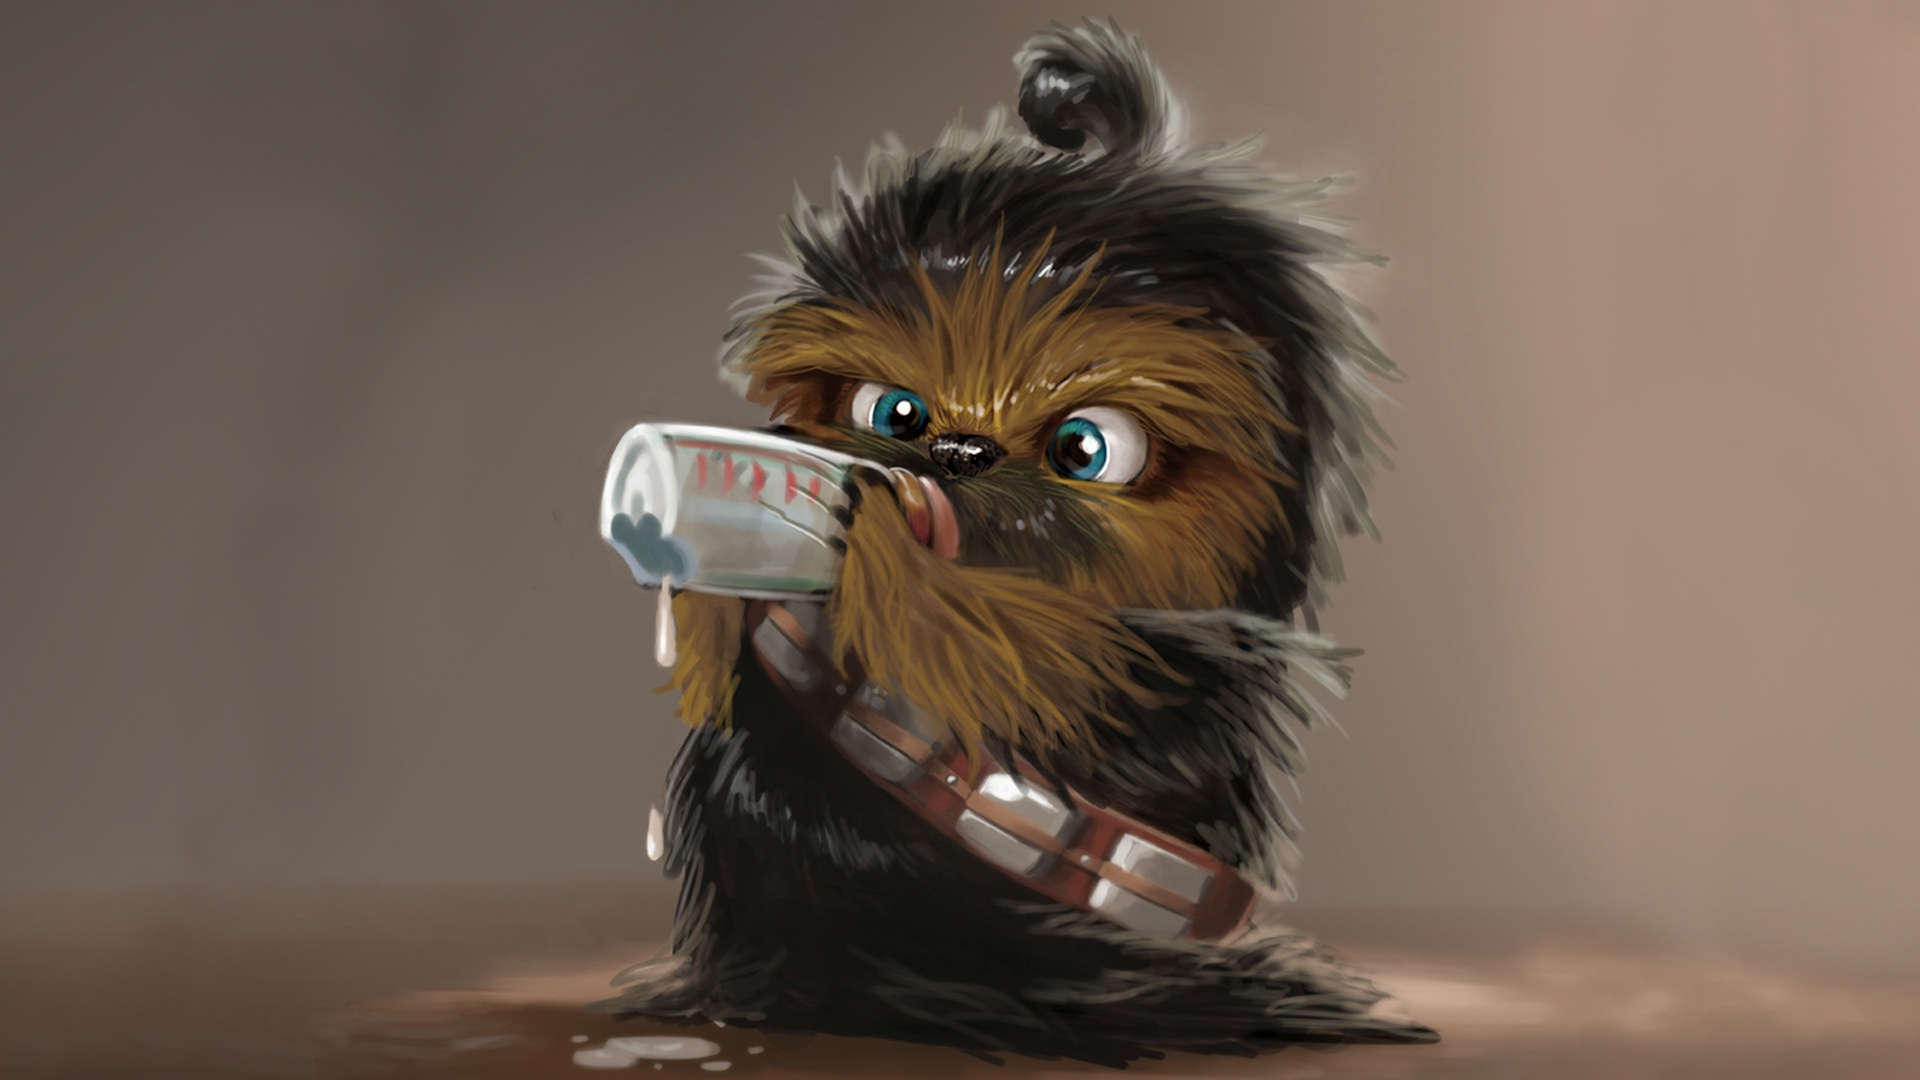 Star wars chewbacca baby Wallpapers HD / Desktop and Mobile Backgrounds